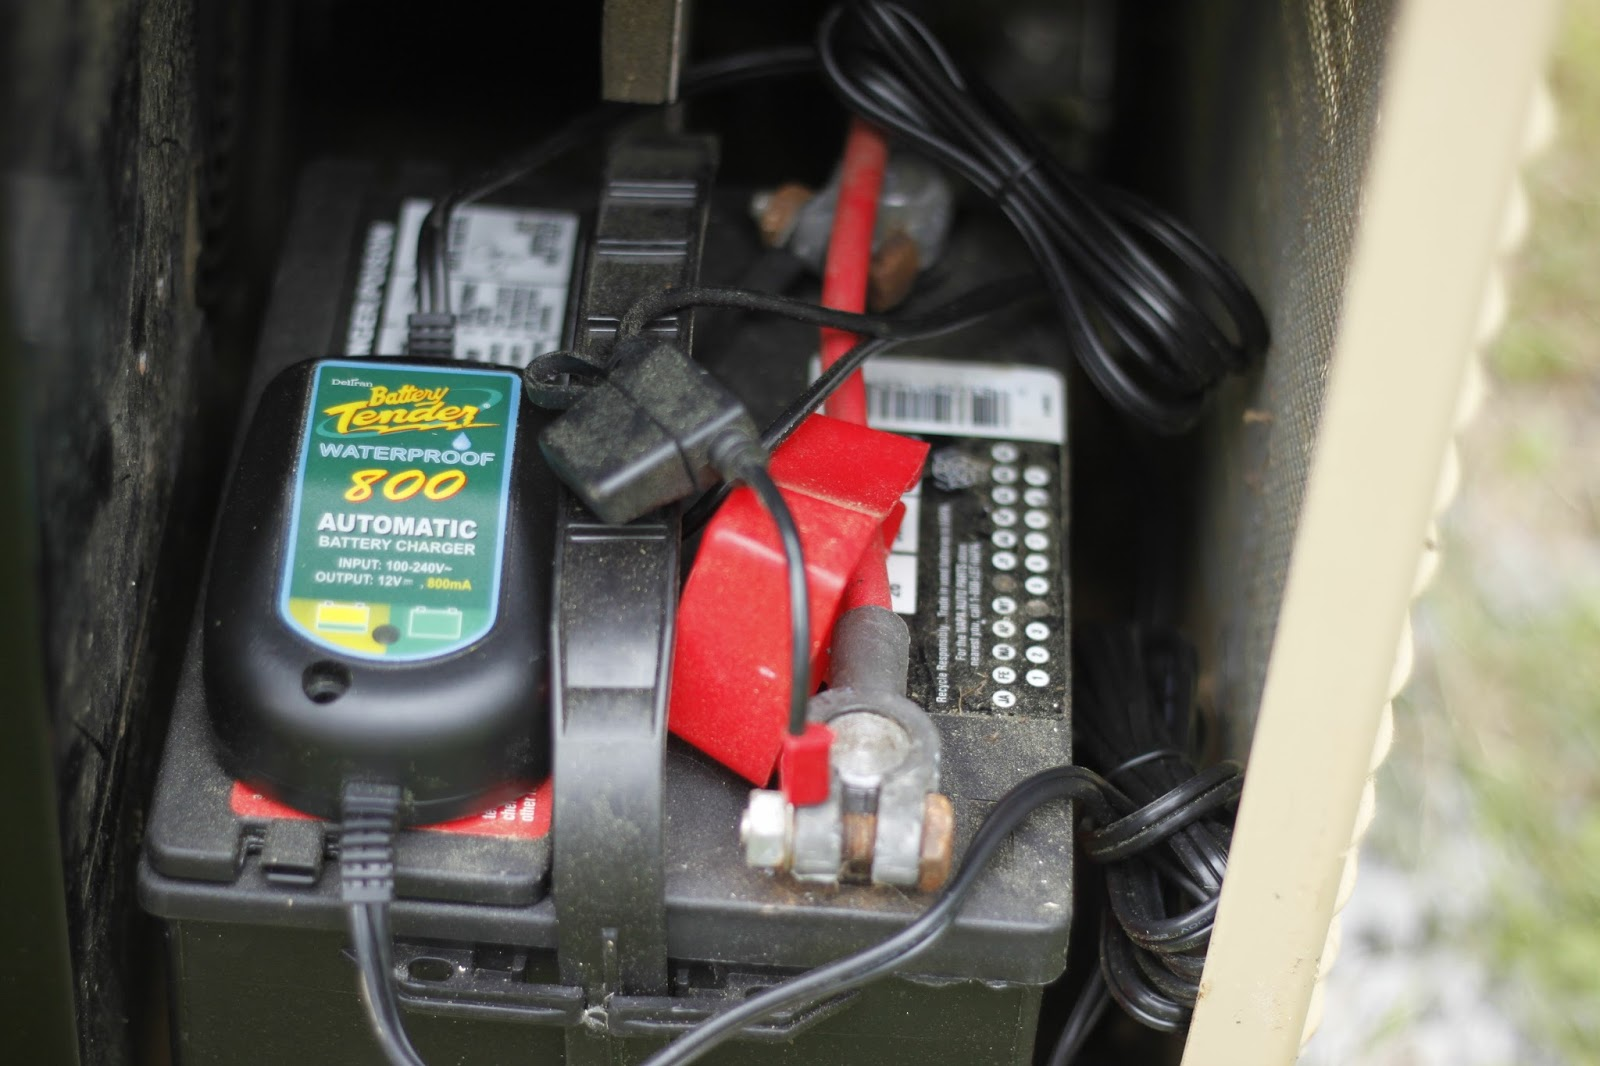 charger%2Bon%2Bbattery fet tricks substitue battery charger for generac generator generac 22kw wiring diagram at edmiracle.co